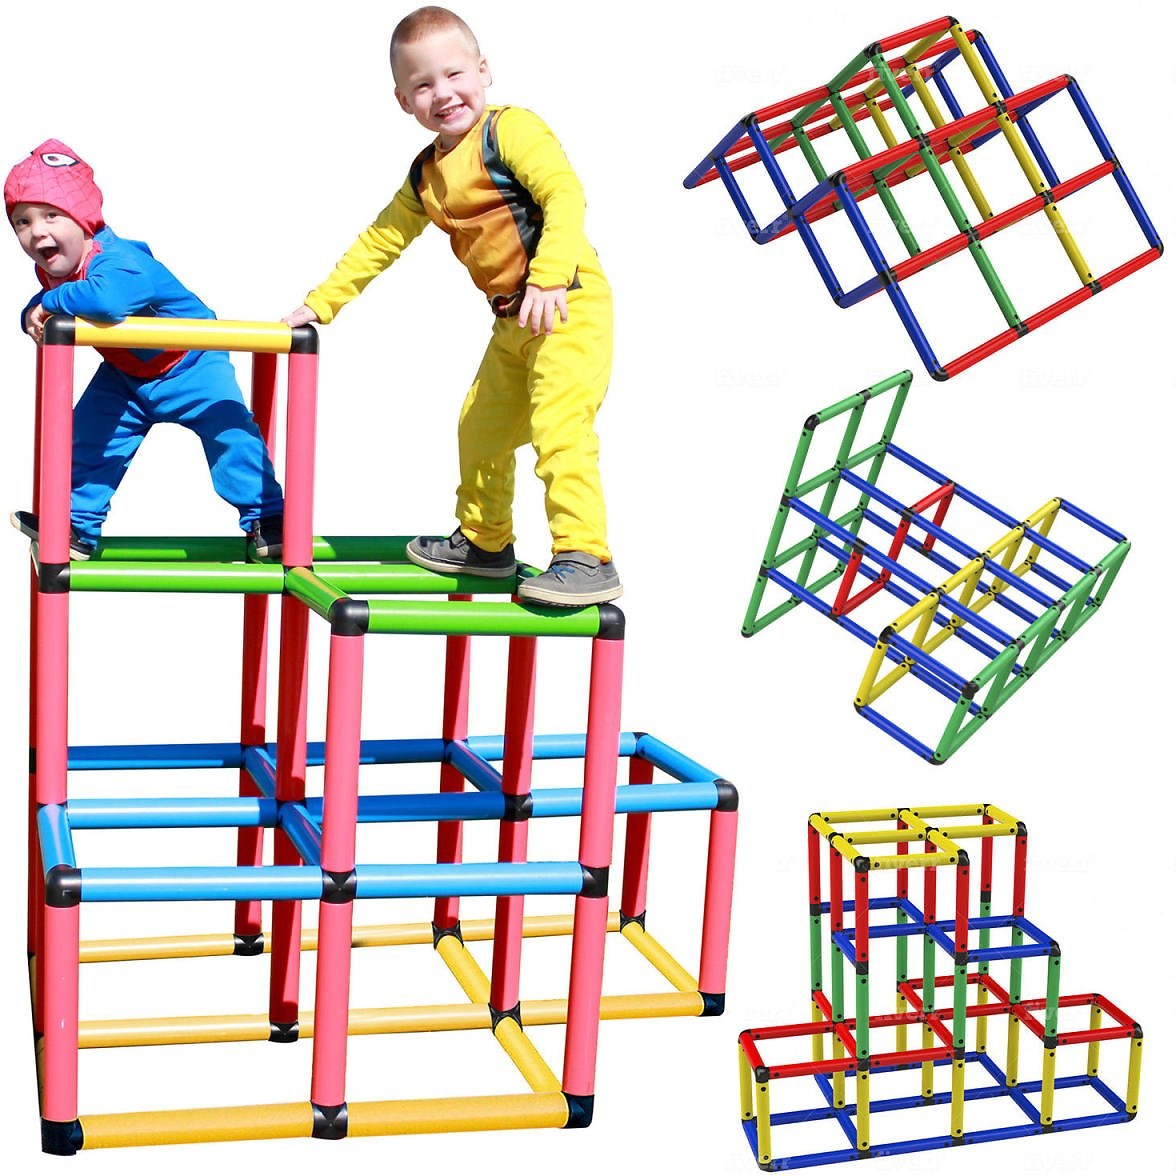 Funphix Create and Play Life Size Structures, Climbing Gyms